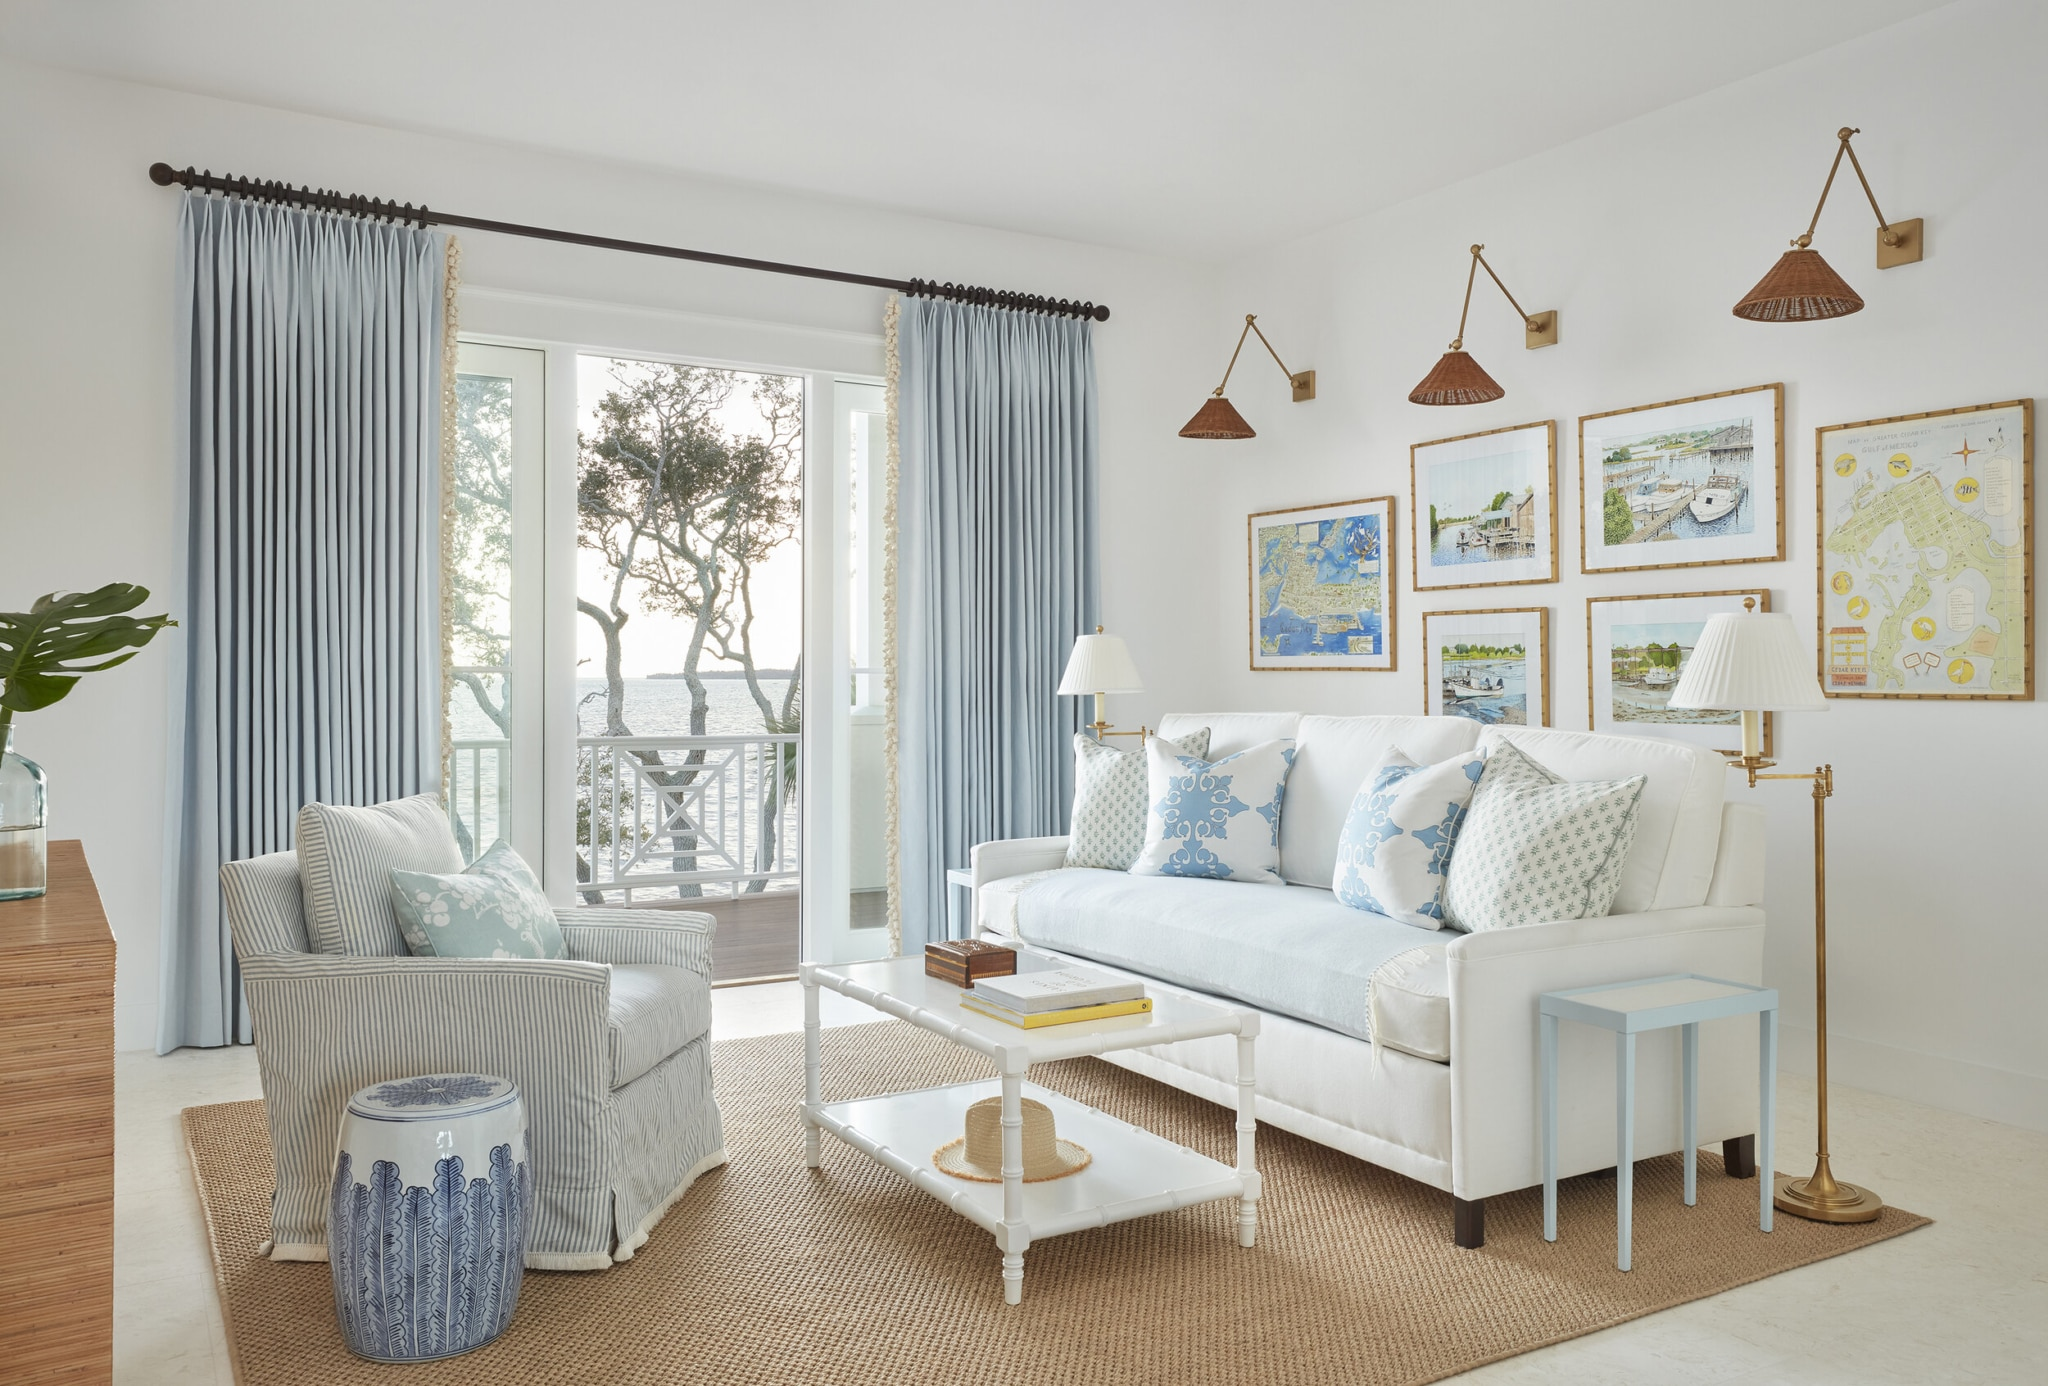 Easy Elegance with Kara Miller Interiors Brantley Photography blue and white